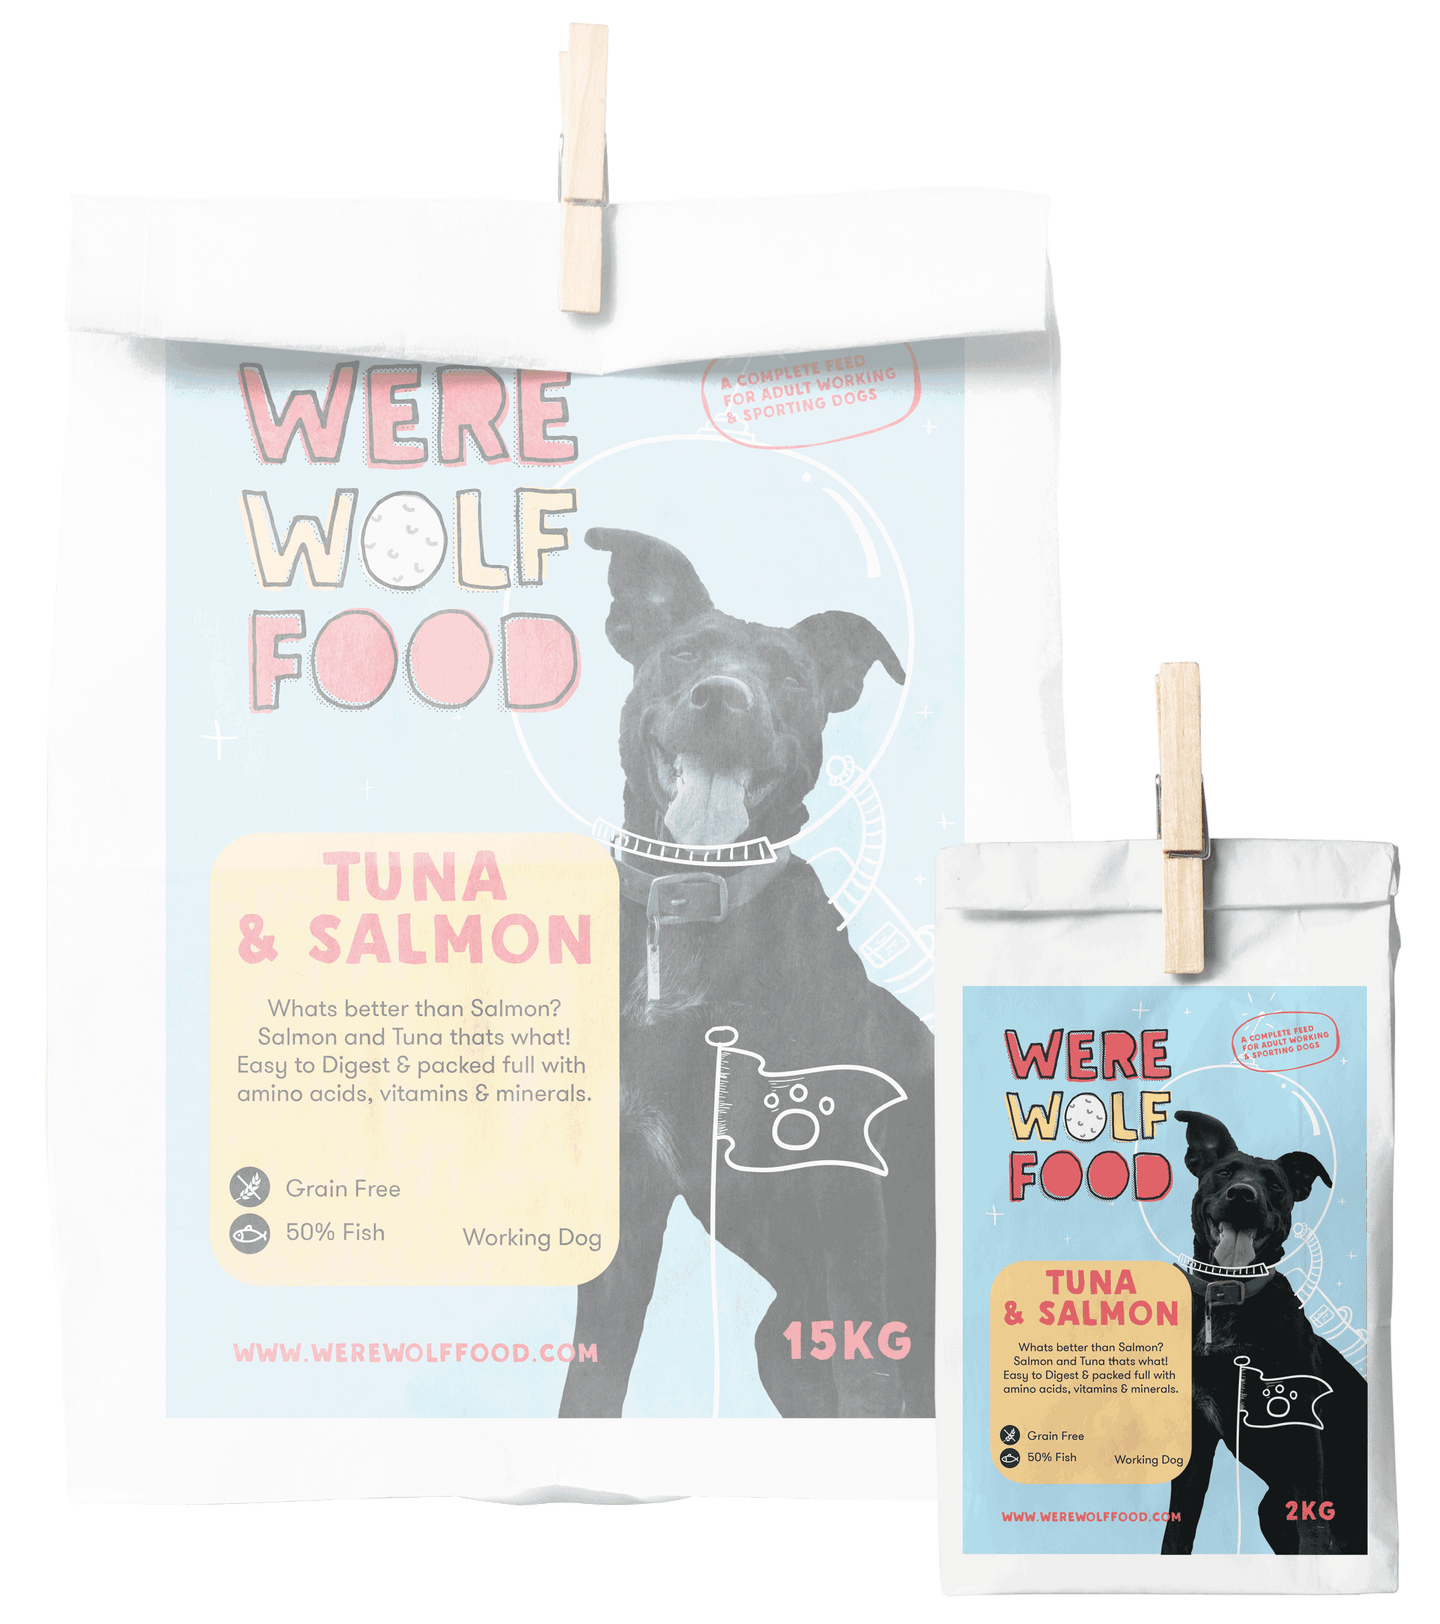 2KG - Tuna & Salmon [Grain Free] - Adult - Werewolf Food